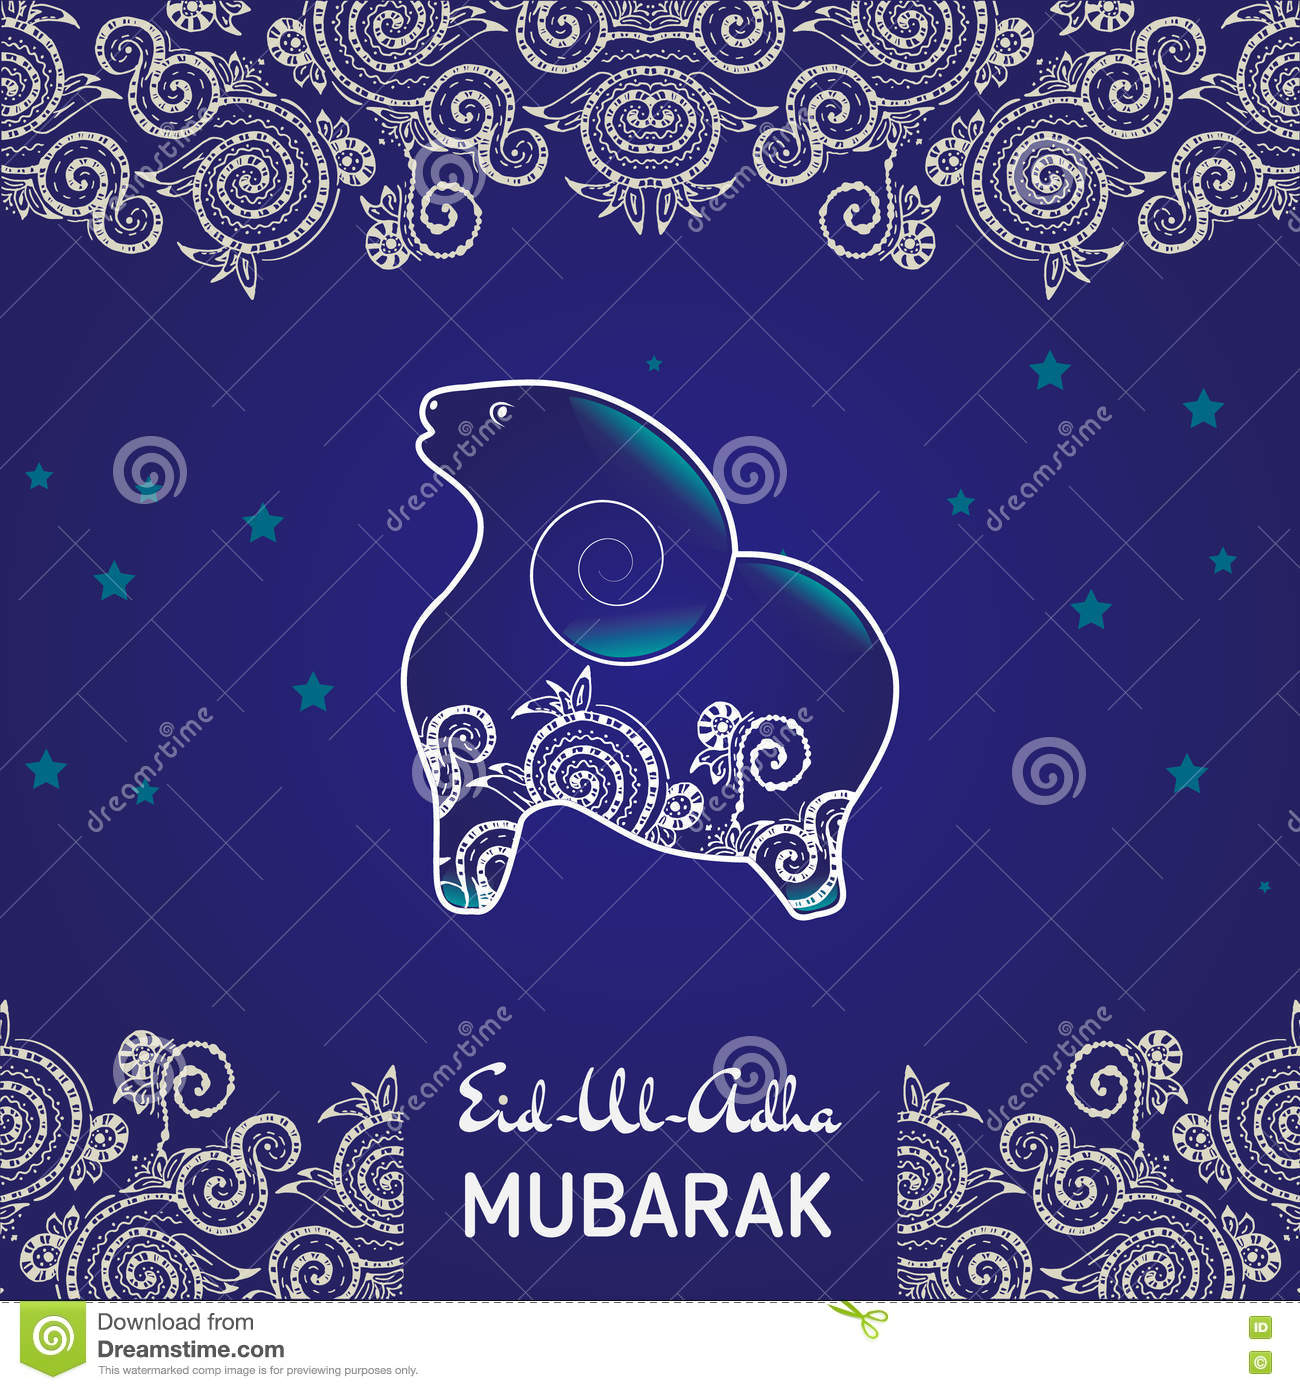 Greeting Card Template For Muslim Community Festival Of Sacrifice